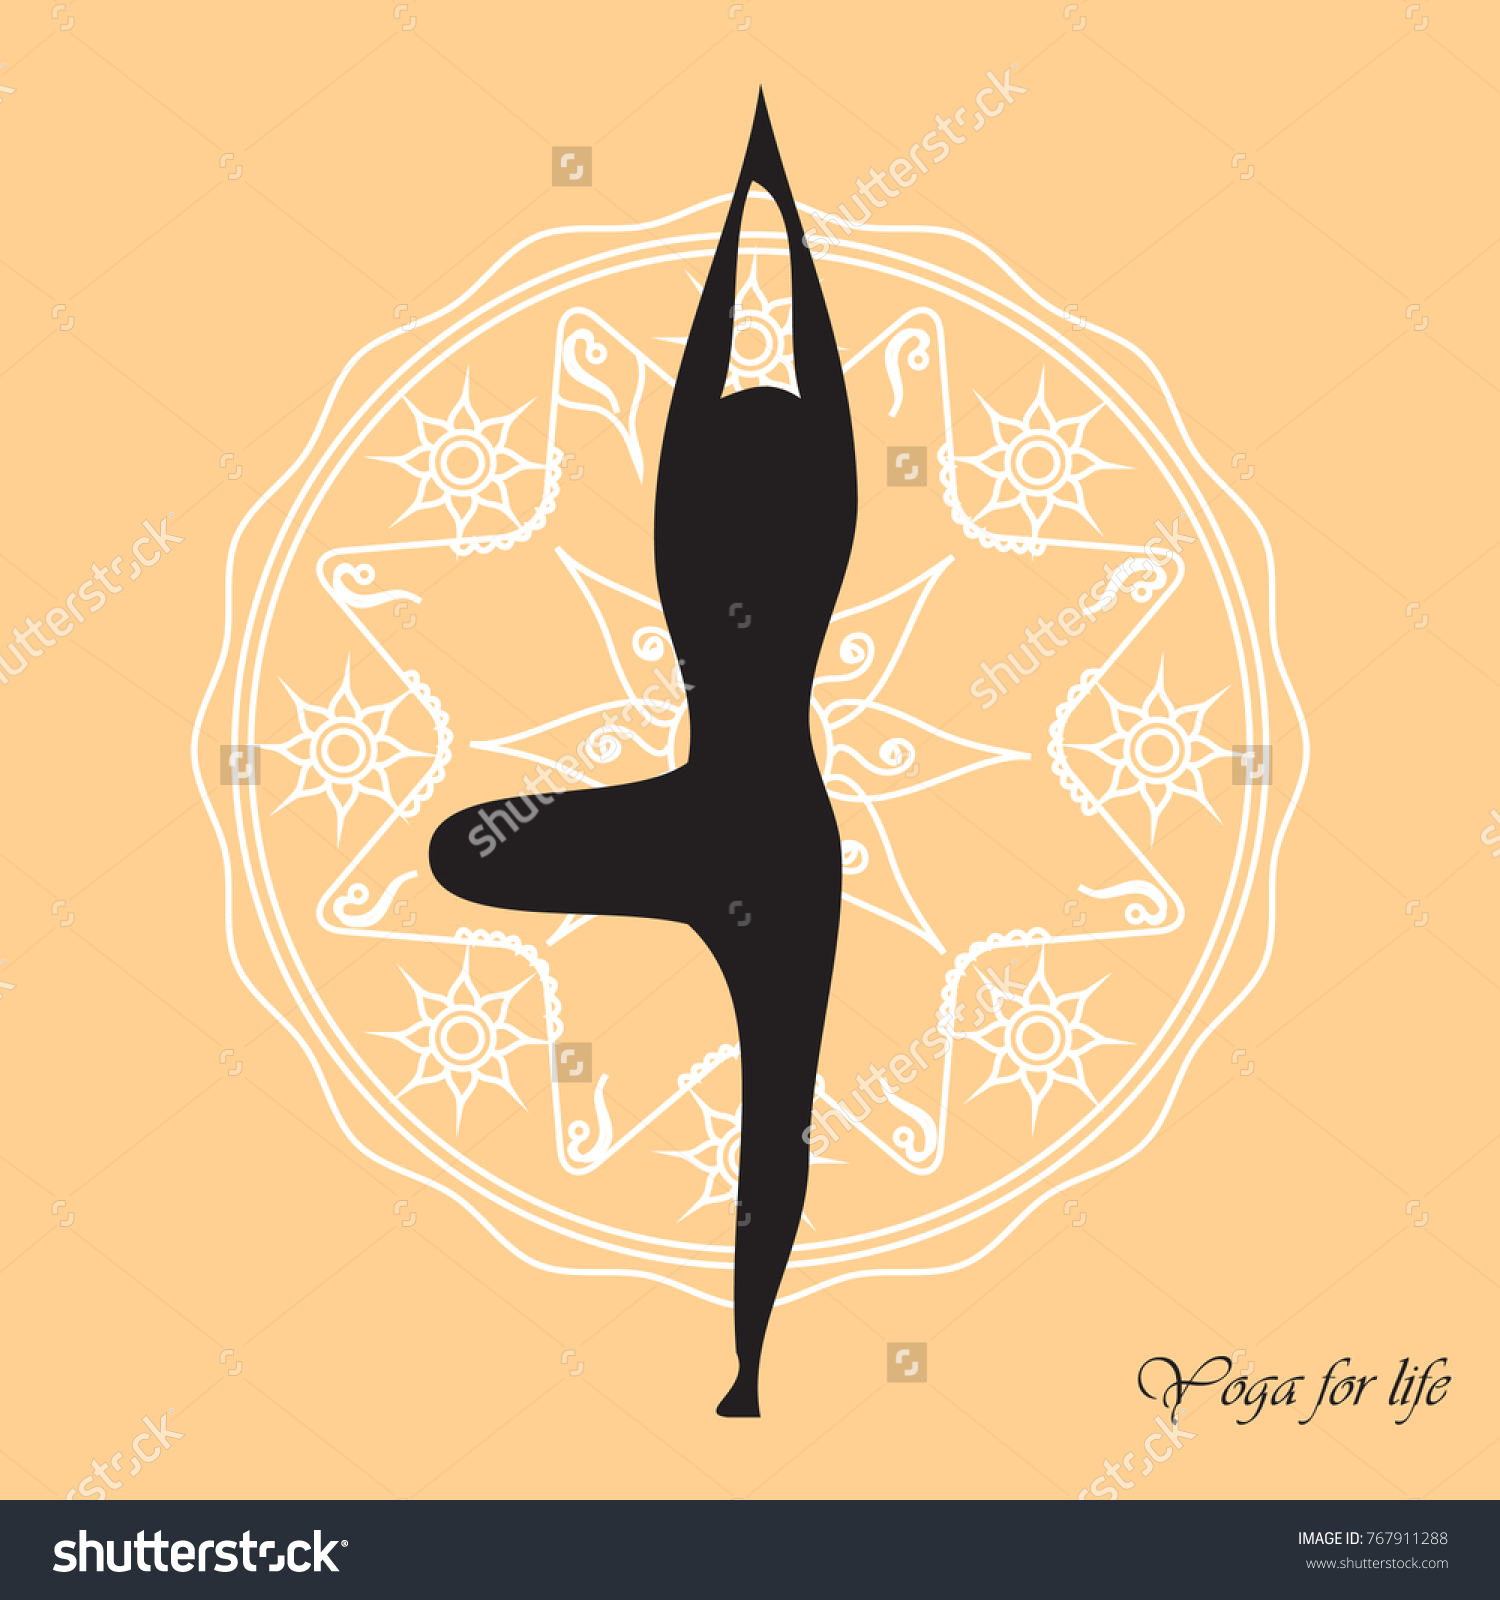 Yoga Pose And Mandala Design On Peach Colored Background Poster Print Banner